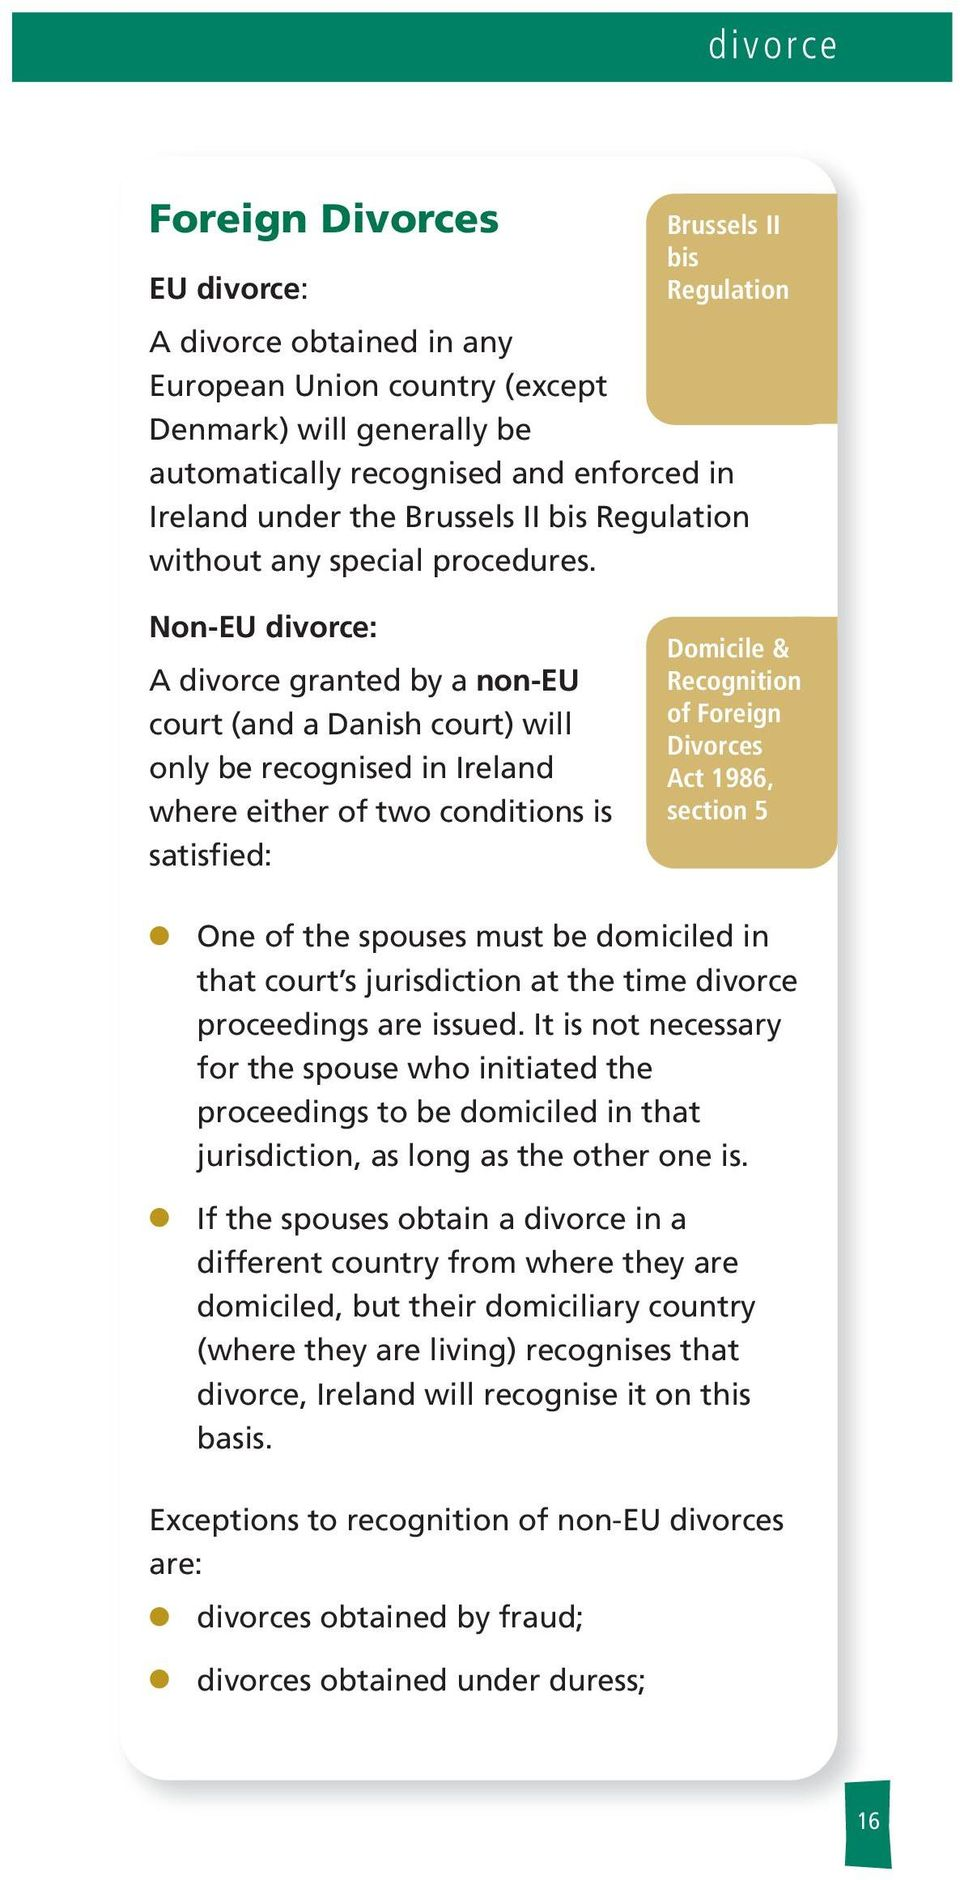 Non-EU divorce: A divorce granted by a non-eu court (and a Danish court) wi ony be recognised in Ireand where either of two conditions is satisfied: Domicie & Recognition of Foreign Divorces Act